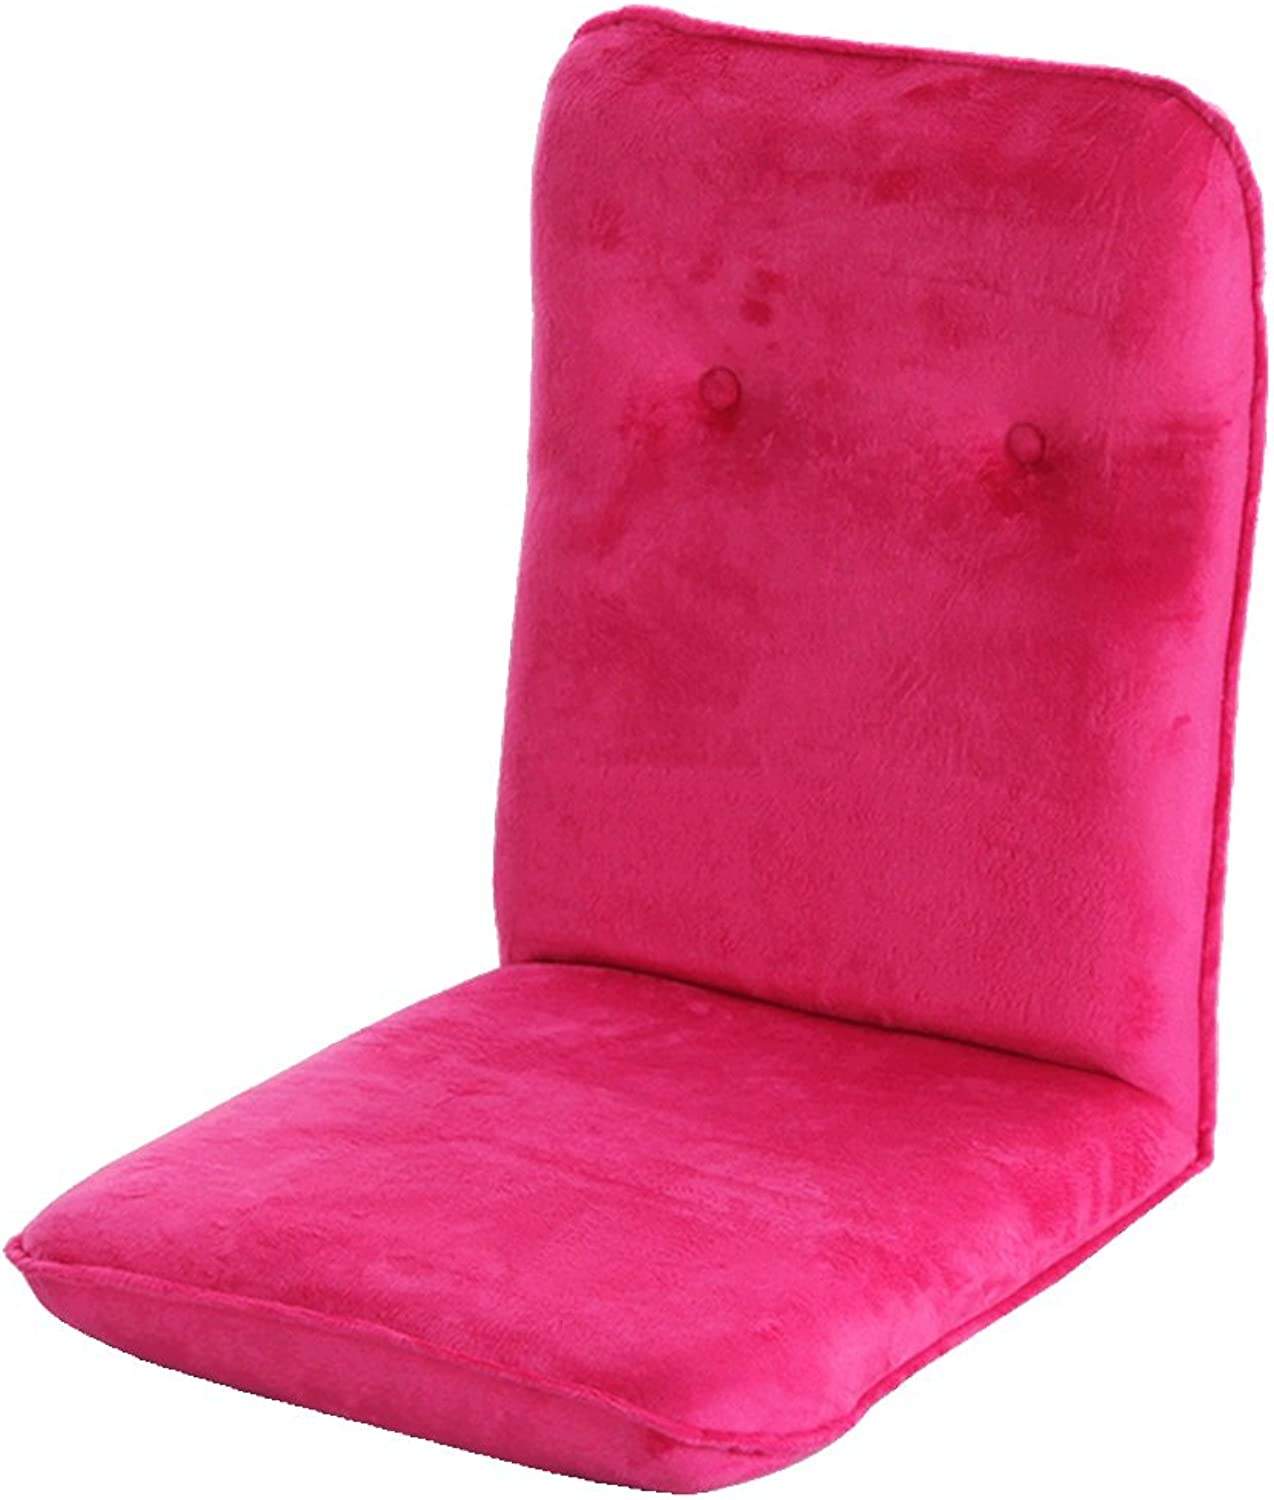 MAHZONG Recliners Folding Lazy Sofa Bedroom Chair Living Room Fabric Sofa Bed (color  Pink, Purple) (color   Pink)